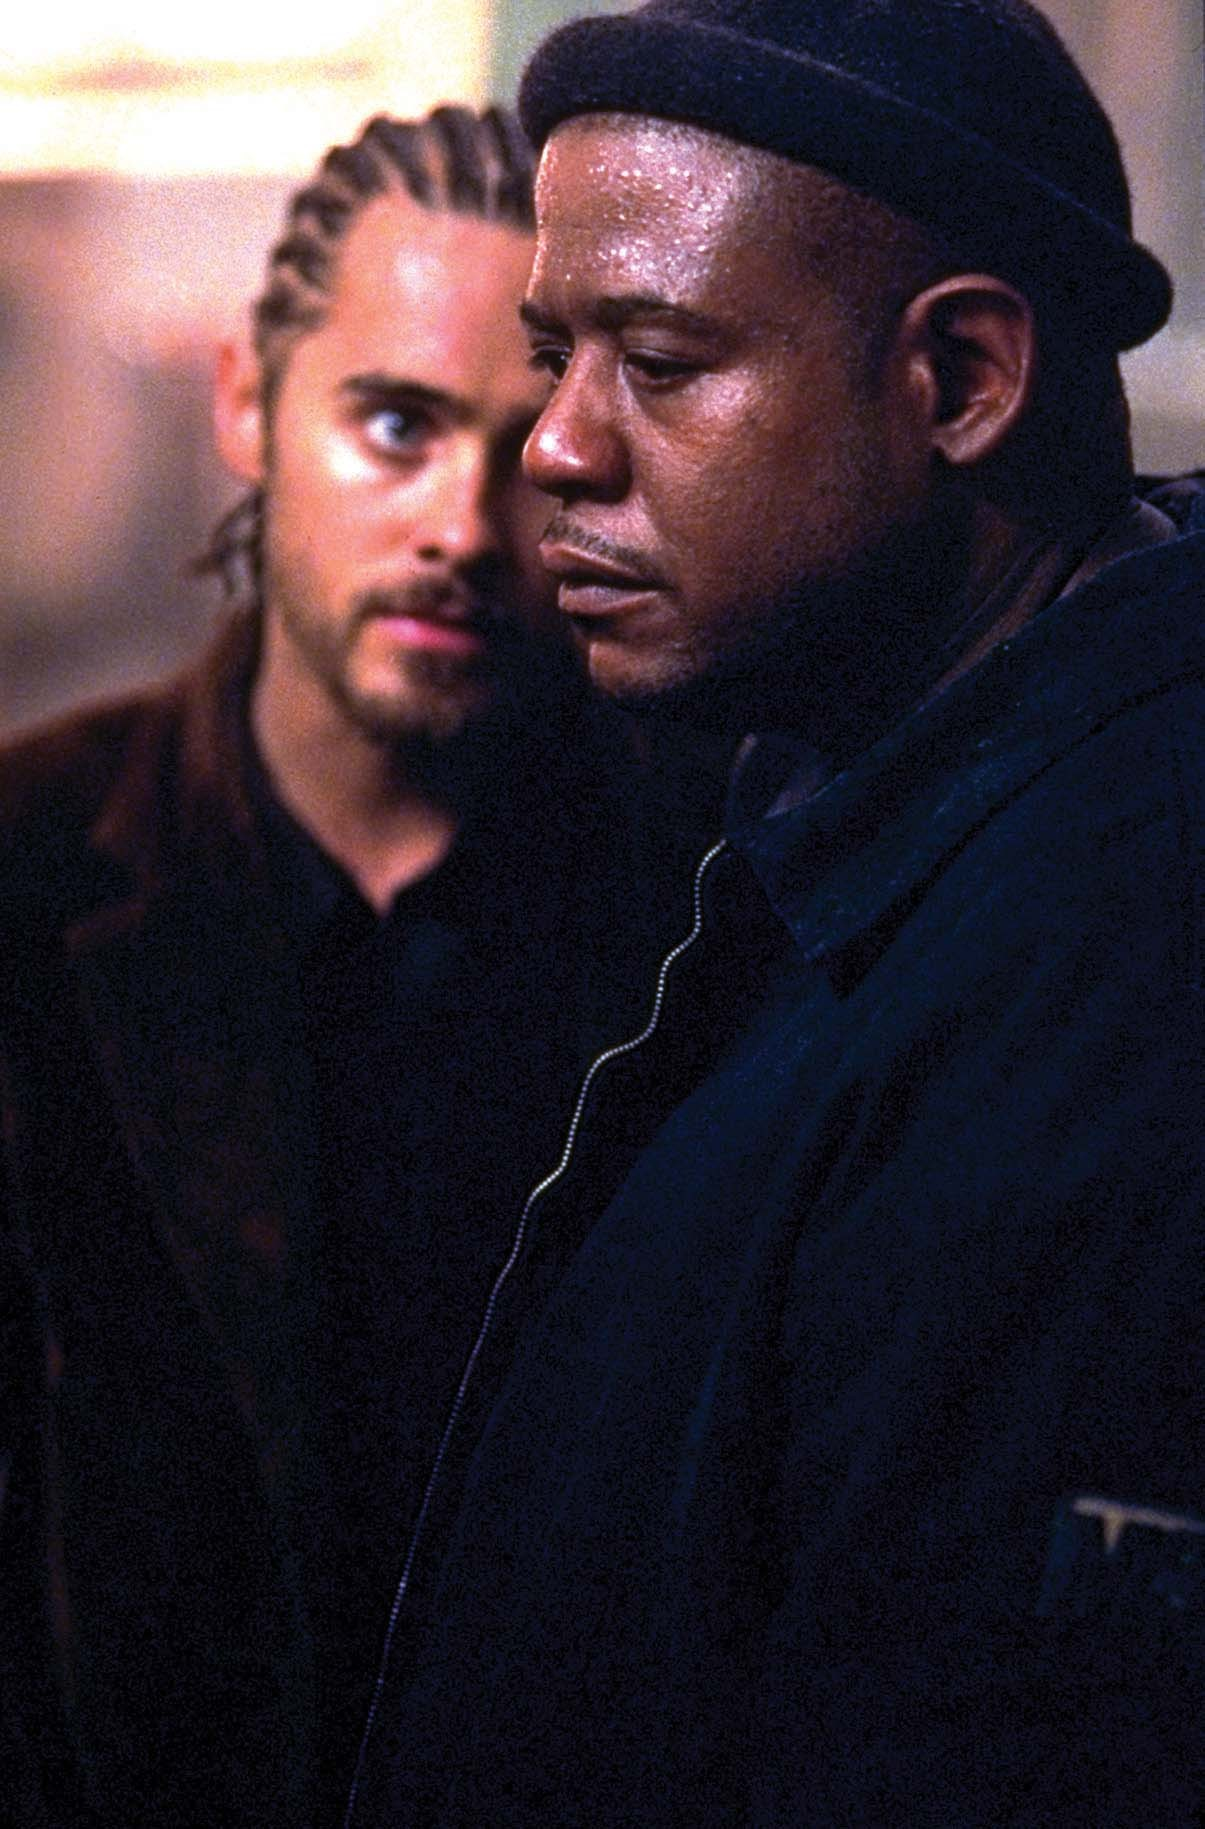 Jared Leto and Forest Whitaker in Panic Room (2002)